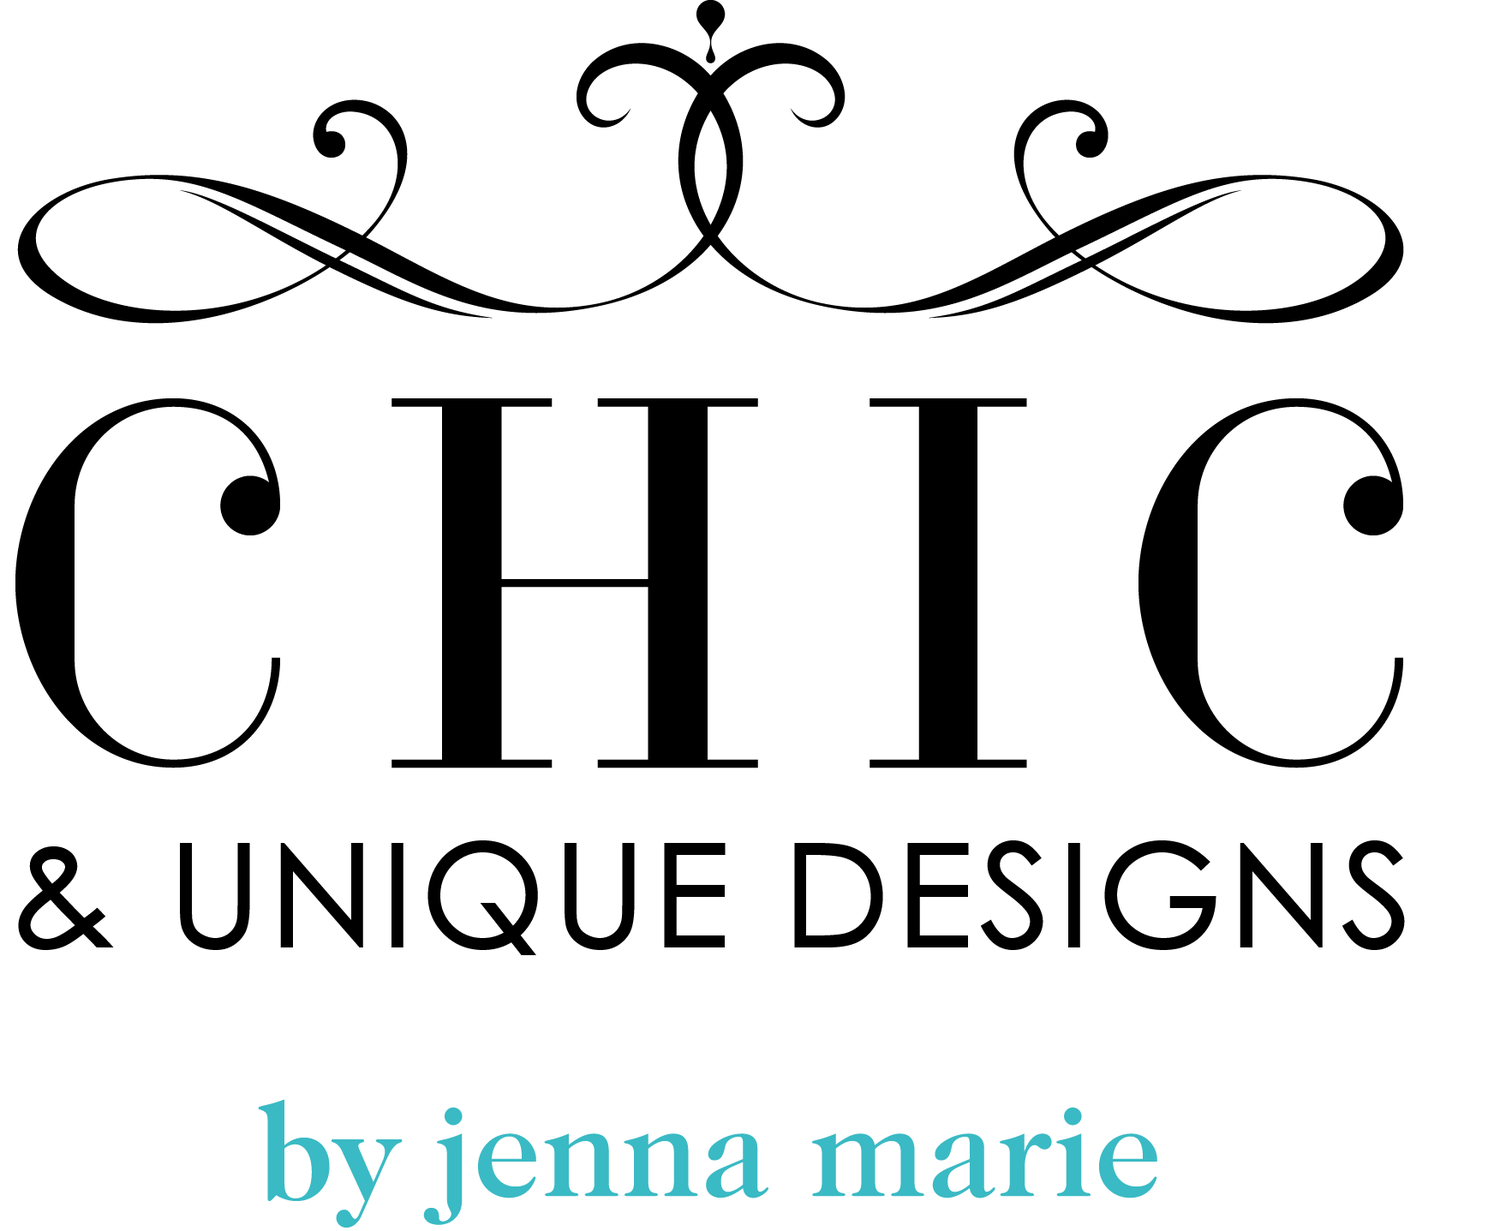 Chic & Unique Designs